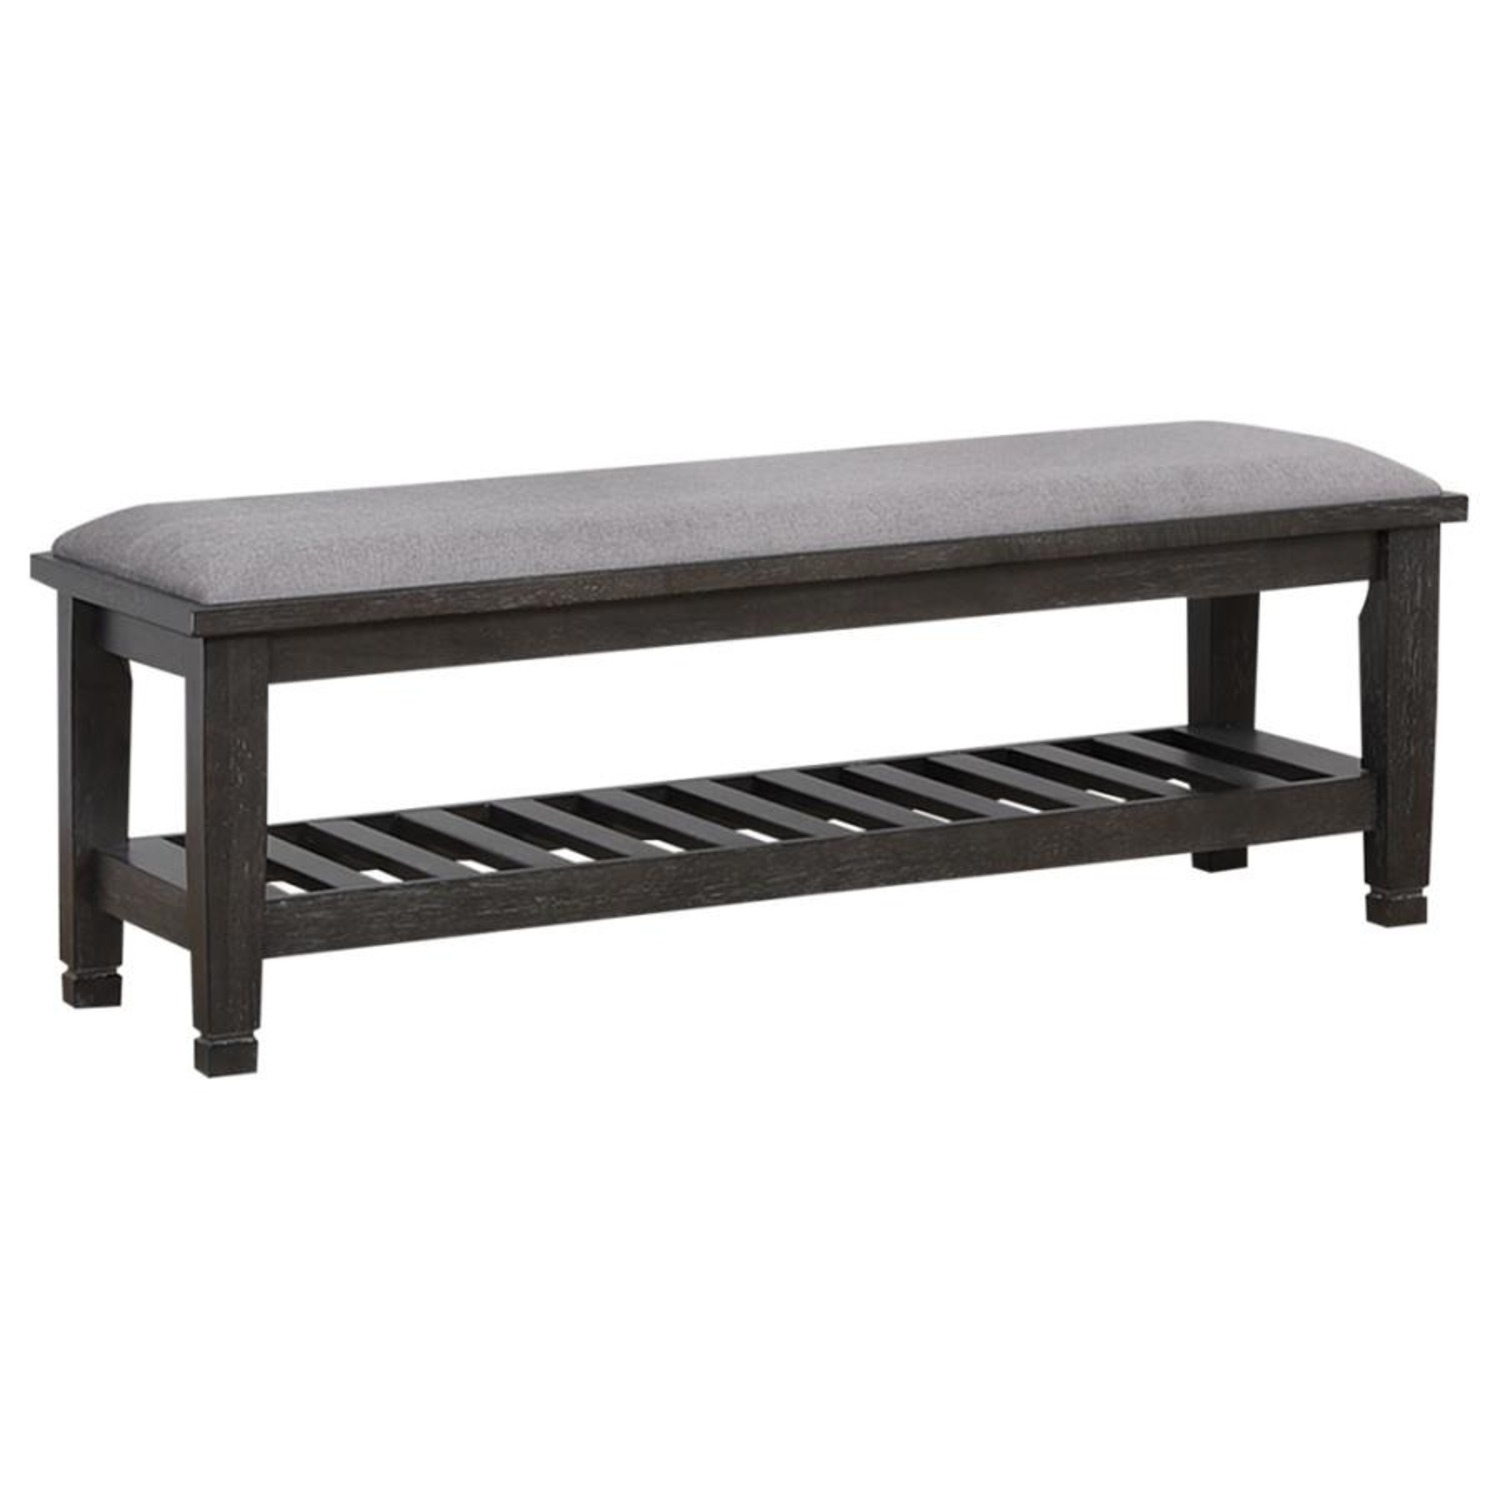 Bench In Weathered Sage Wood Finish - image-0